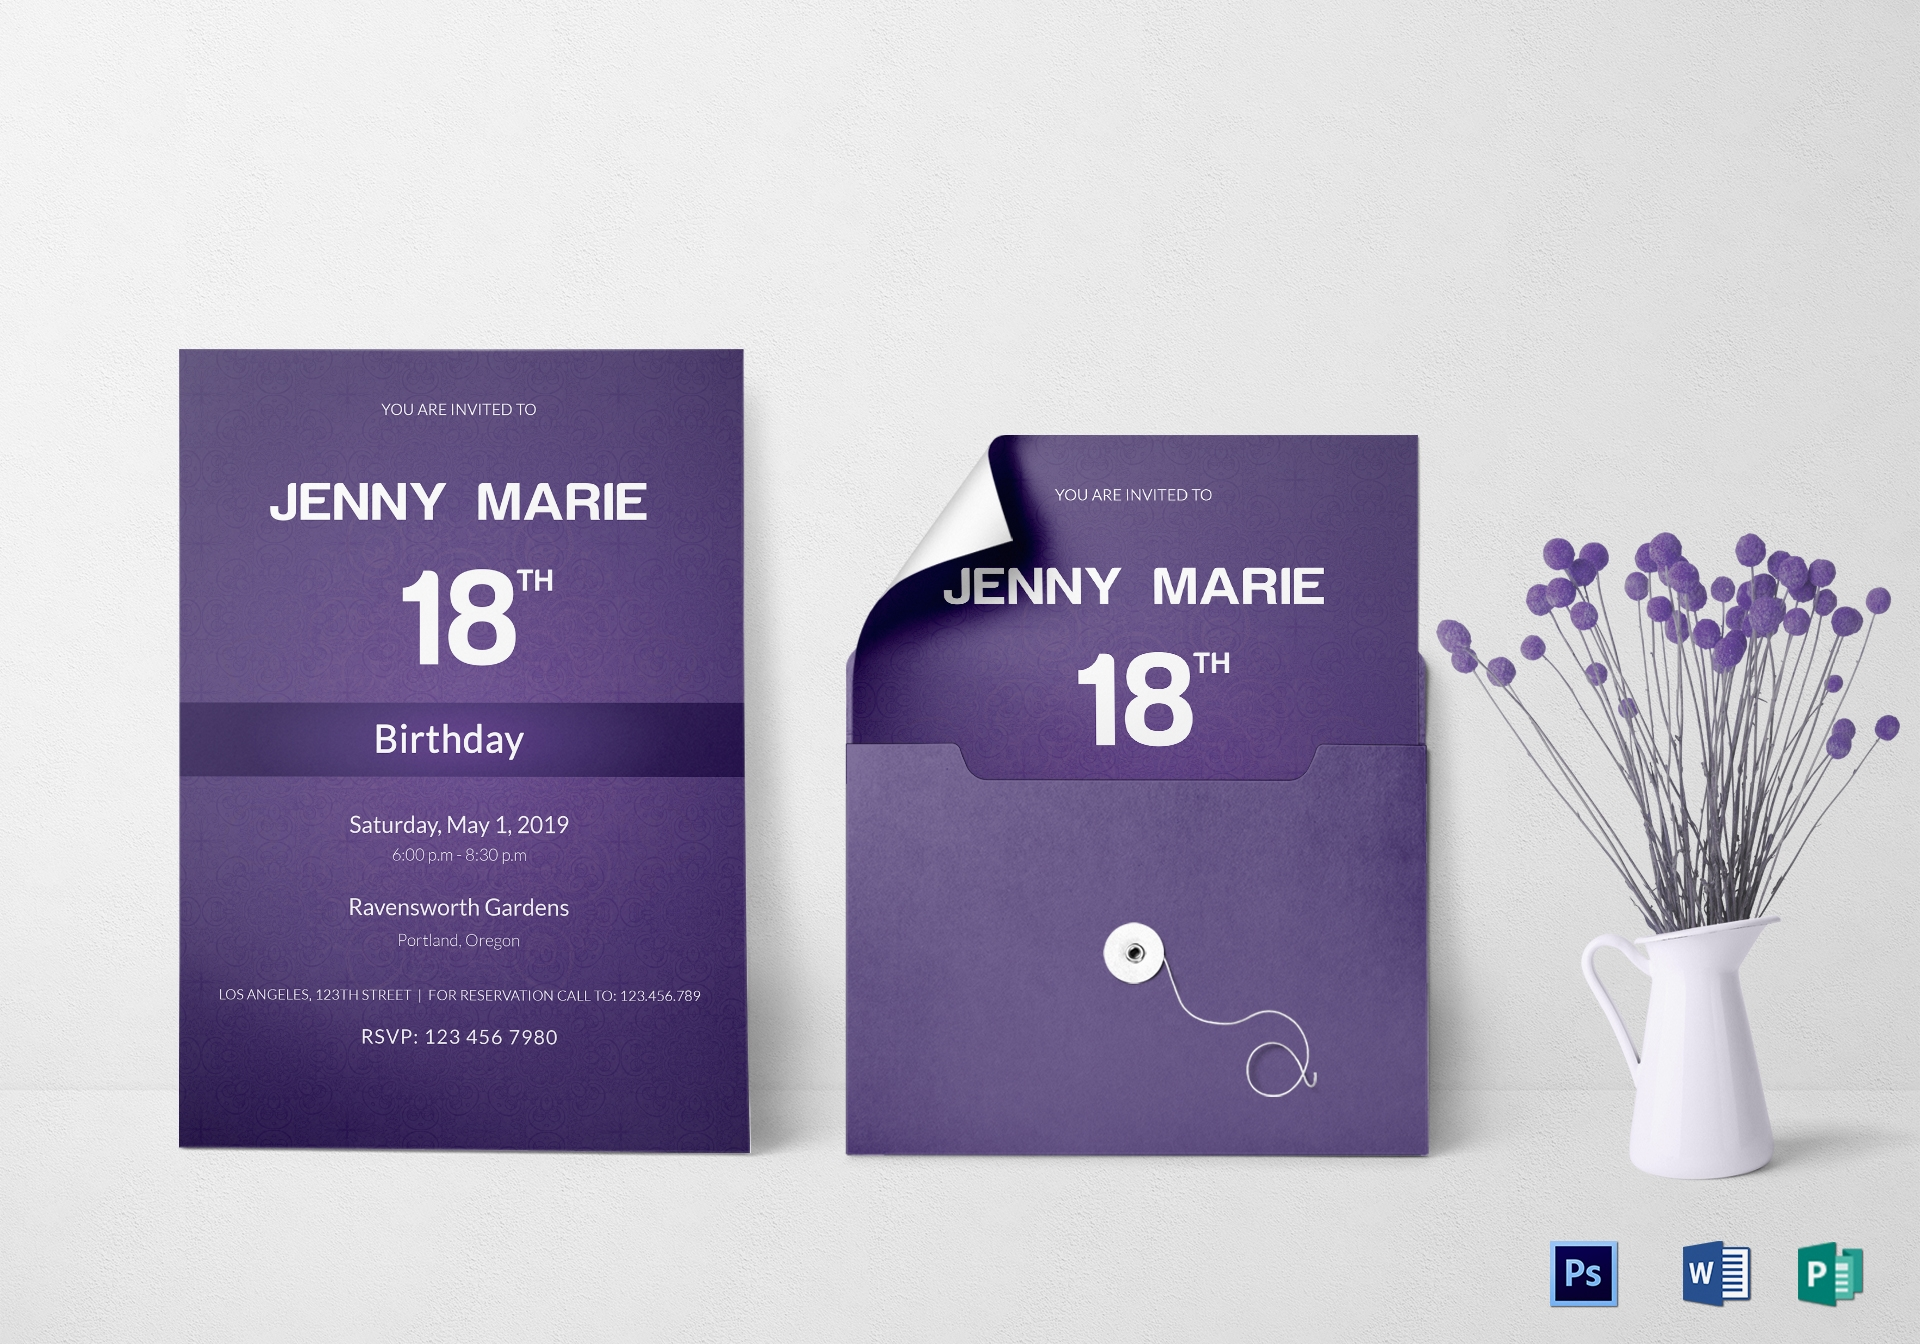 debut event invitation card template